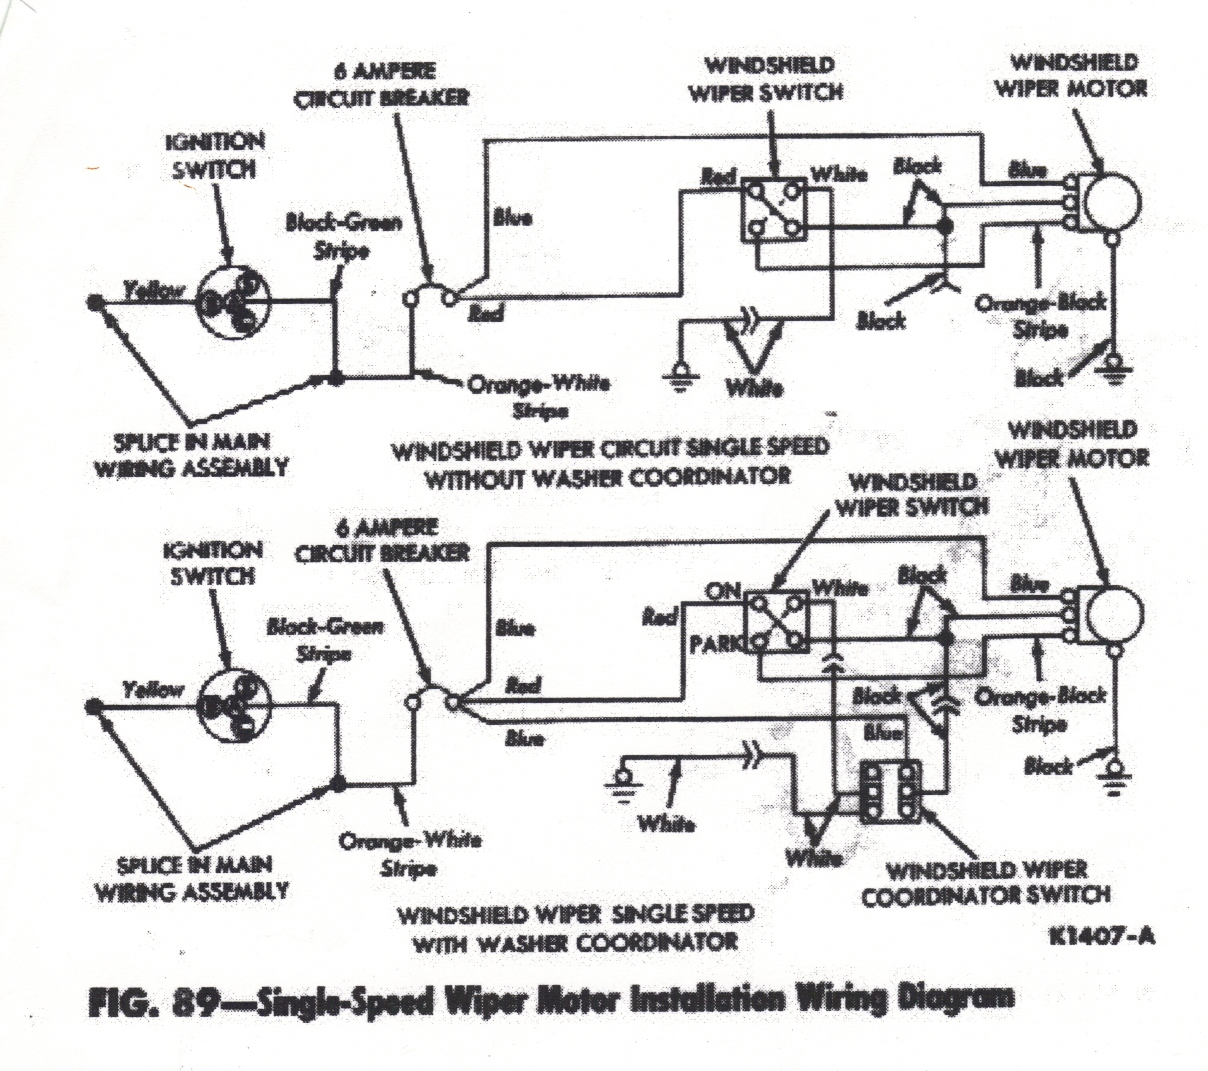 Wiper Switch Wiring Diagram 1964 Comet Anything Diagrams Gm Falcon Rh Wizard Com 1978 Ford Motor